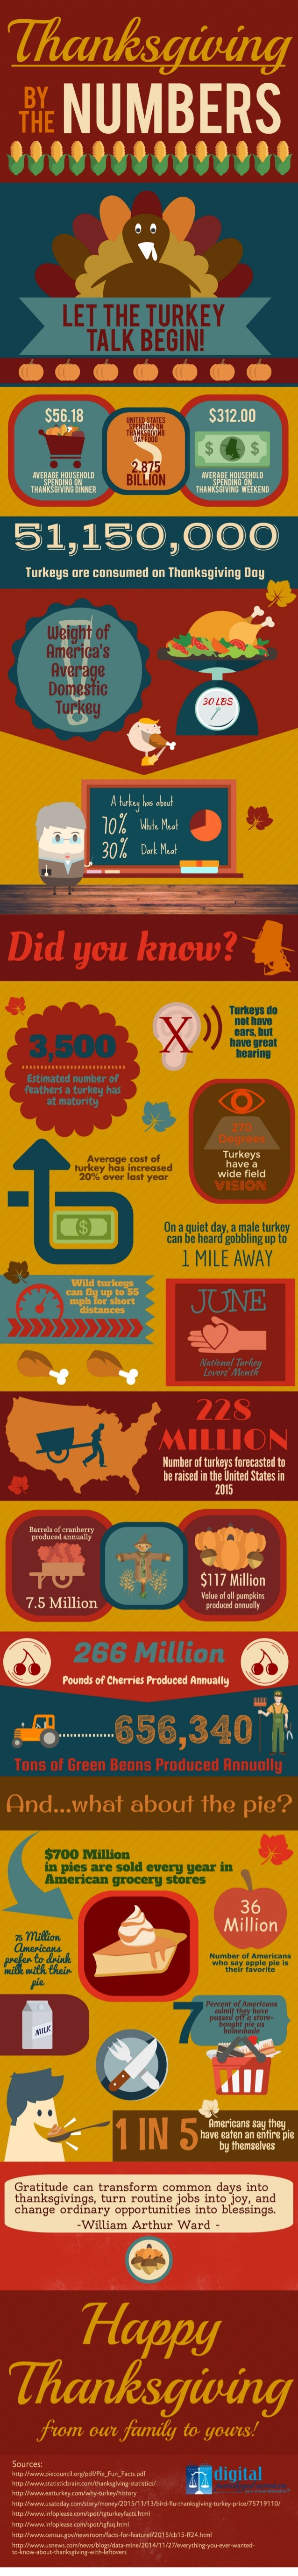 Thanksgiving: By the Numbers